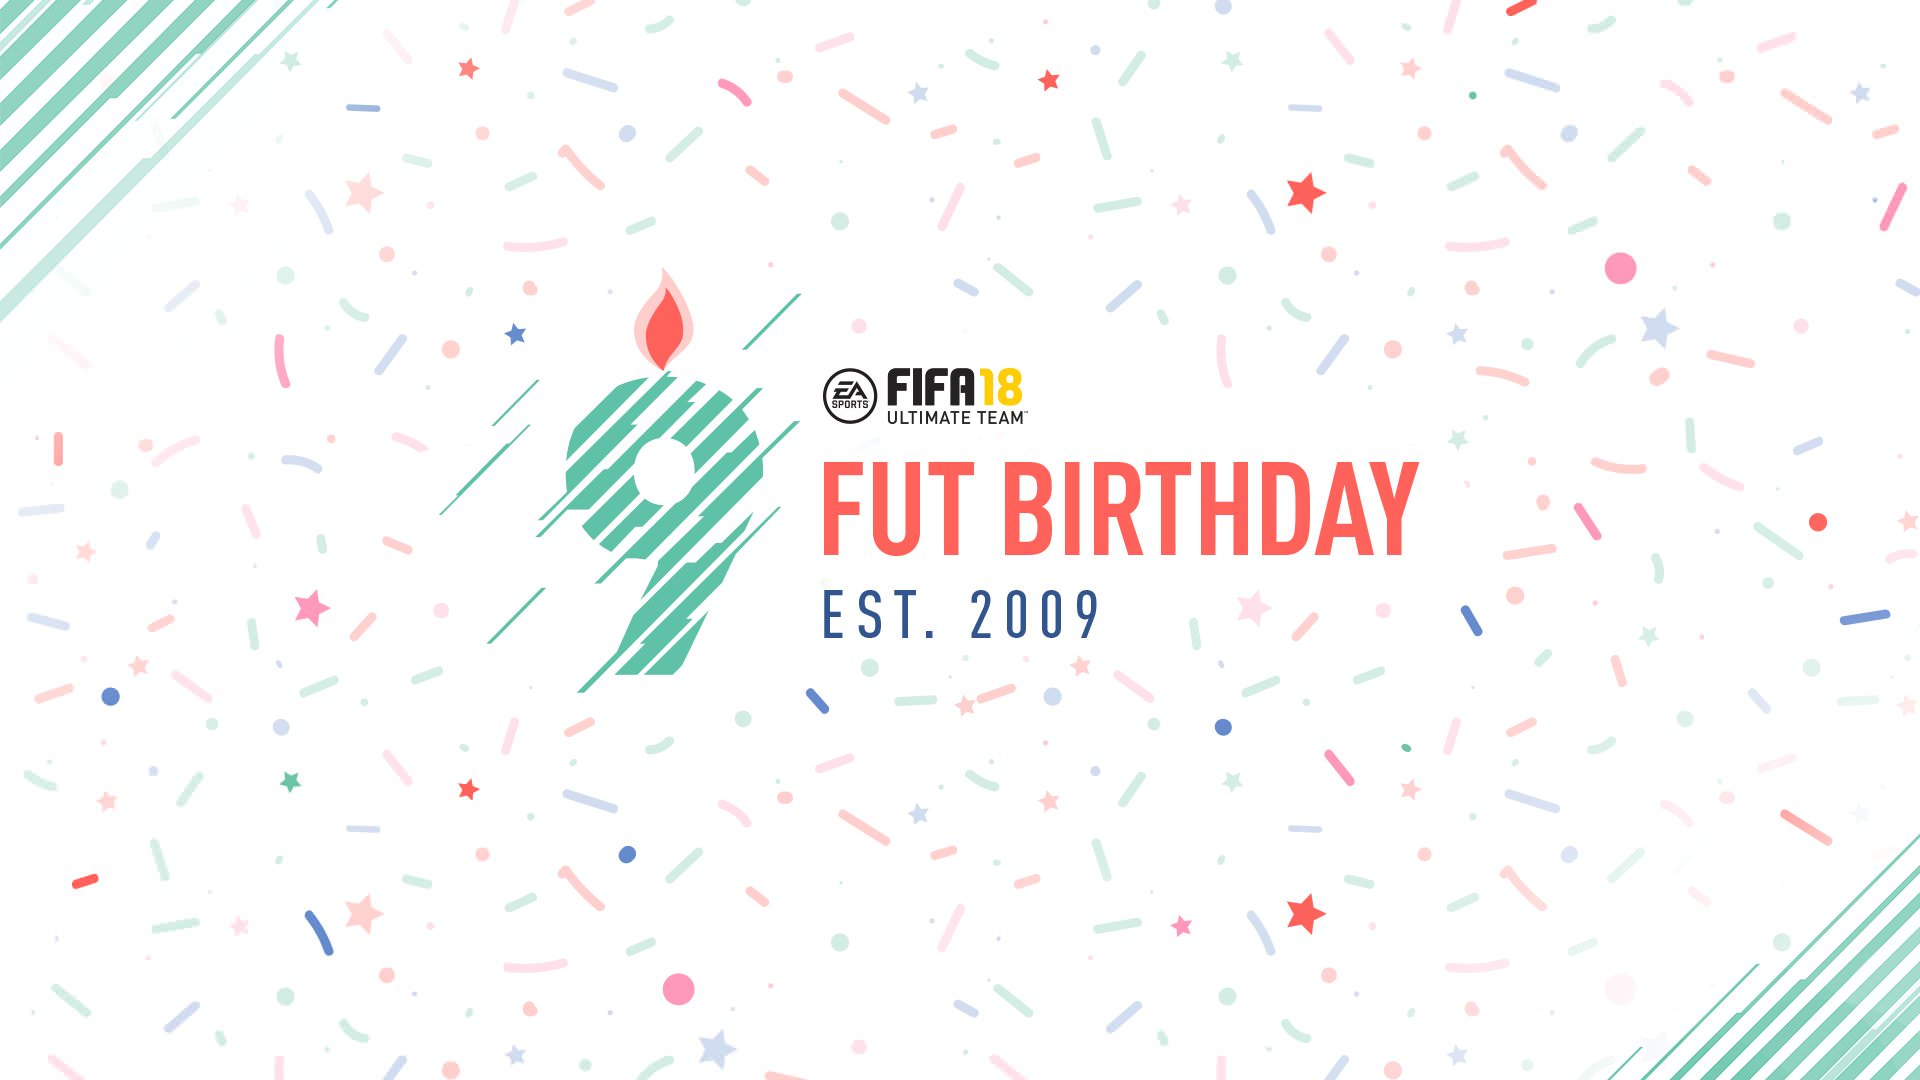 FIFA 18 FUT Birthday